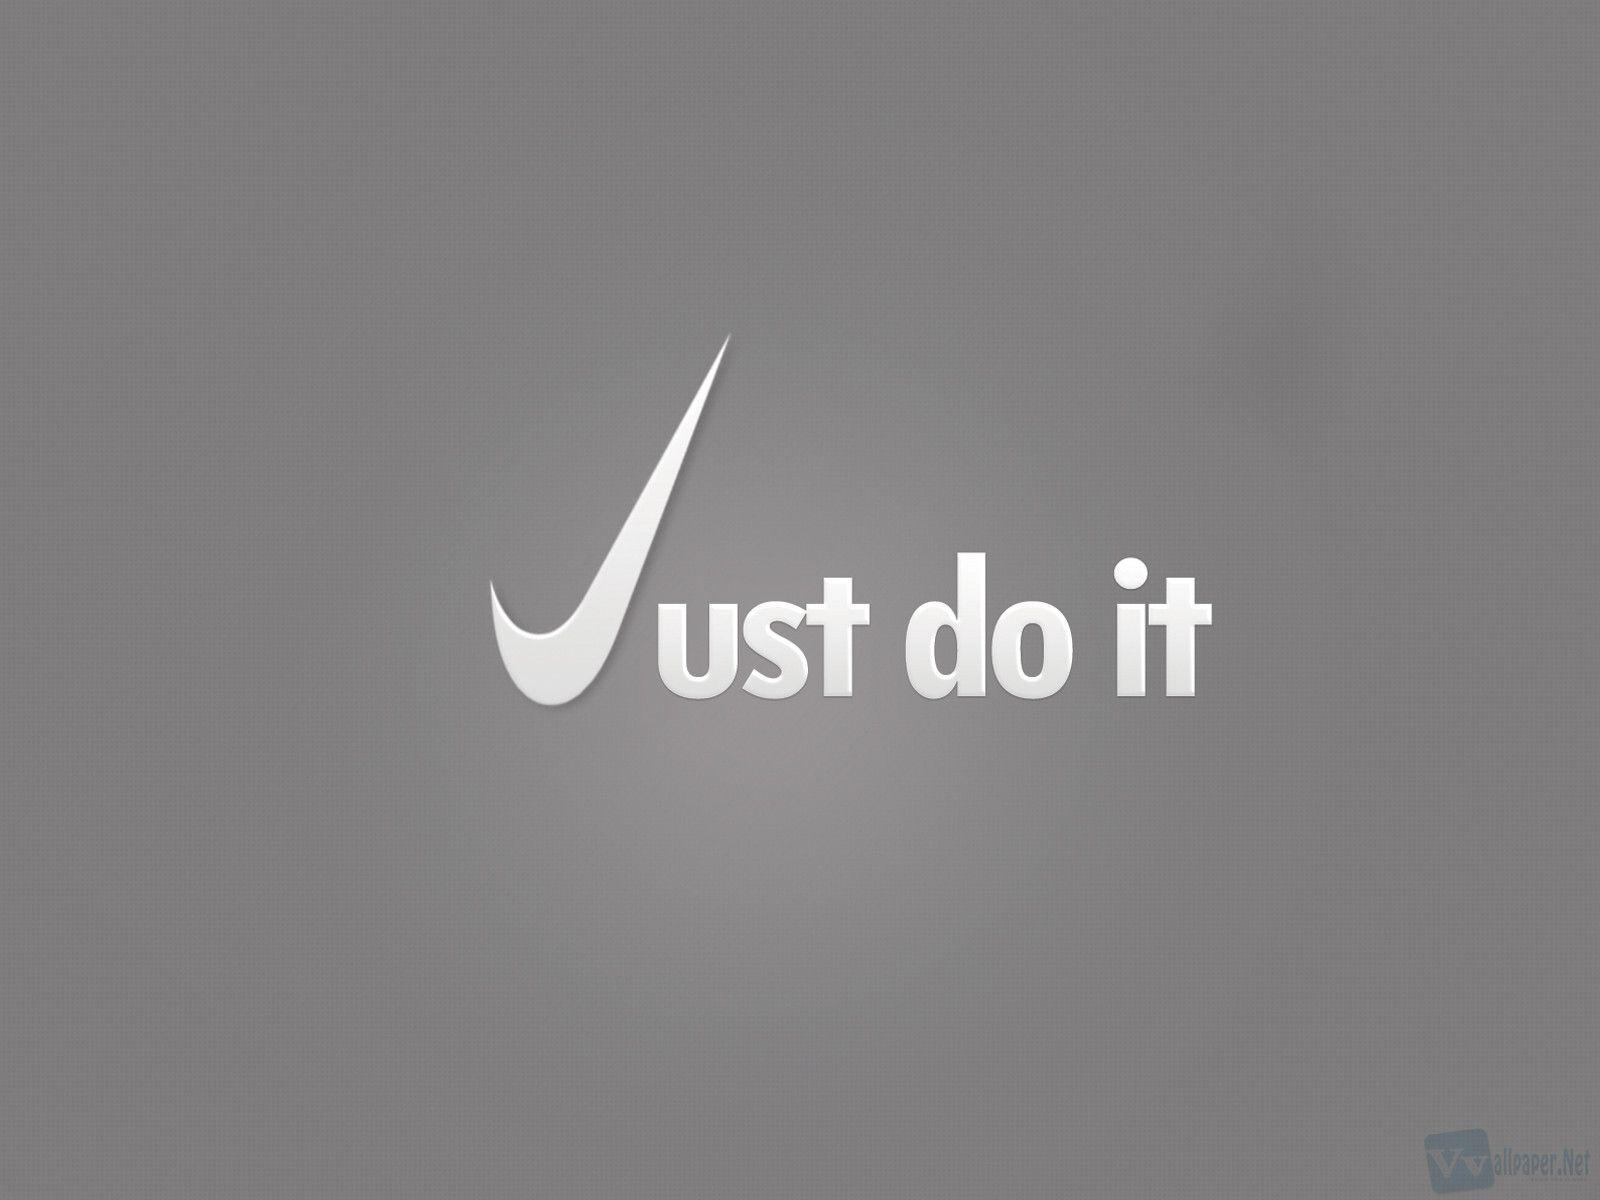 Wallpaper Logo Nike Just Do It Pictures 5 HD Wallpapers | Hdwalljoy.